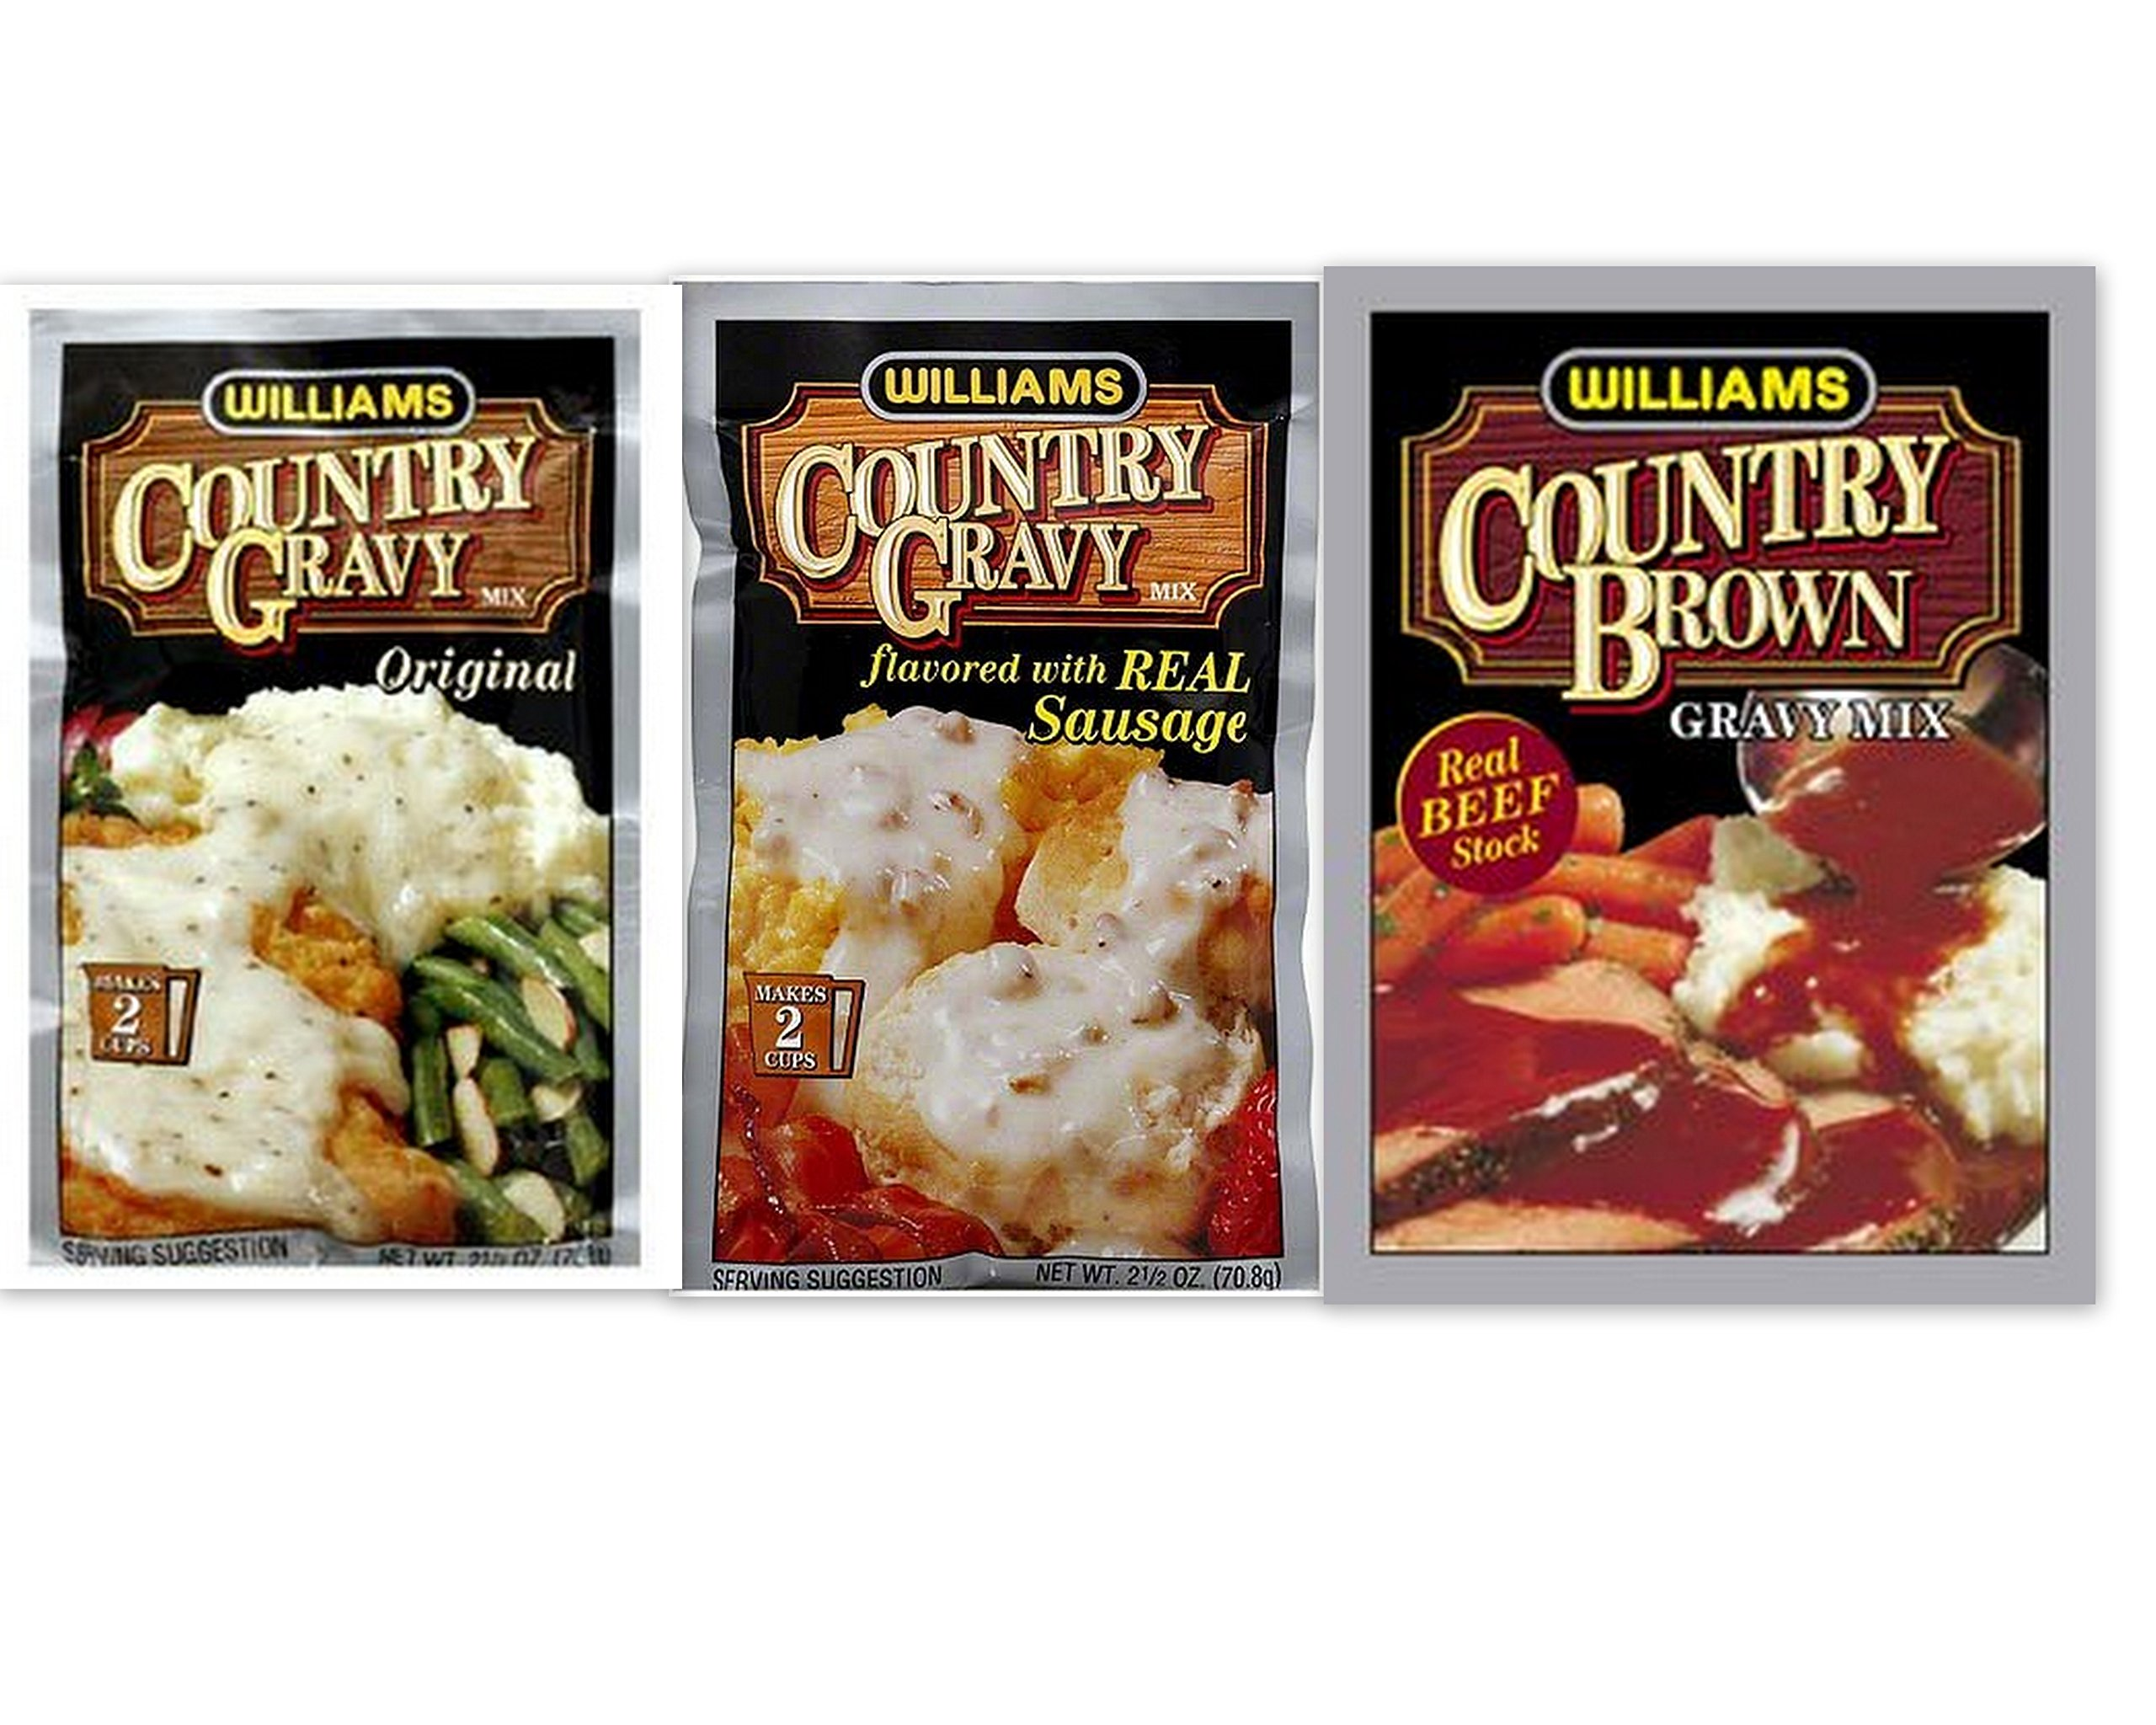 Williams Country Gravy Variety Bundle includes 2-Pack Country Gravy mix flavored with Real Sausage, 2.5 oz + 2-Pack Country Gravy Original Mix, 2.5 oz + 2-Pack Country Brown Mix, 1 oz